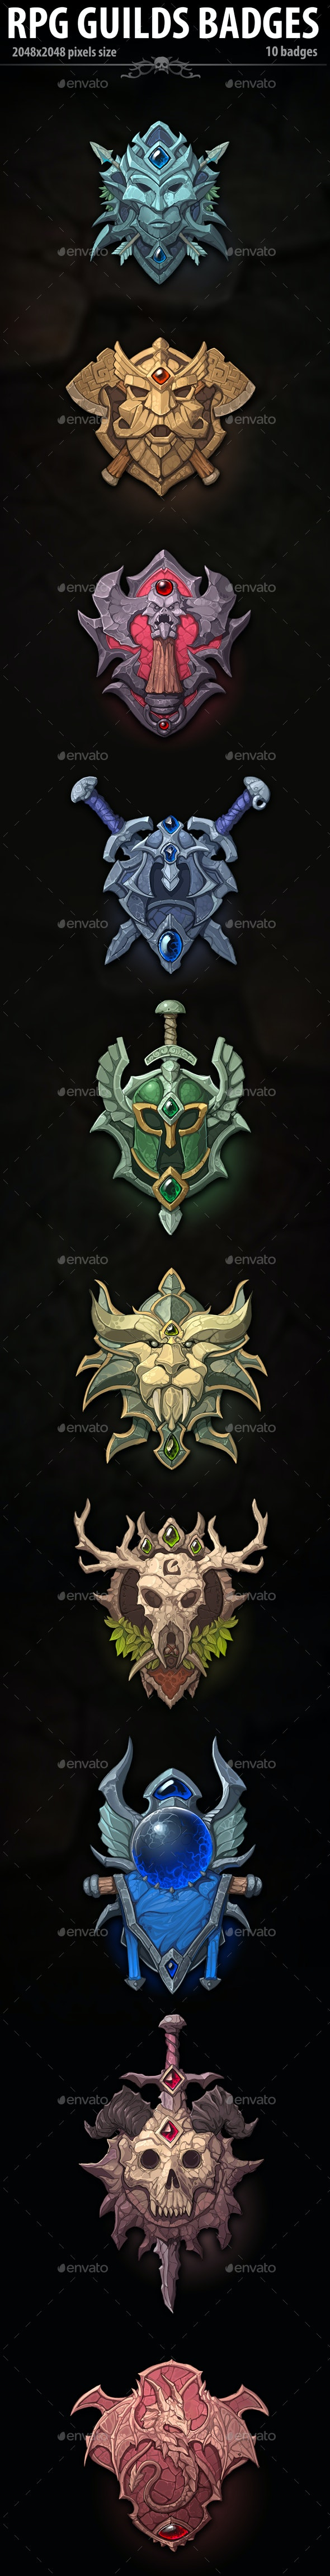 RPG Guilds Badges - Miscellaneous Game Assets